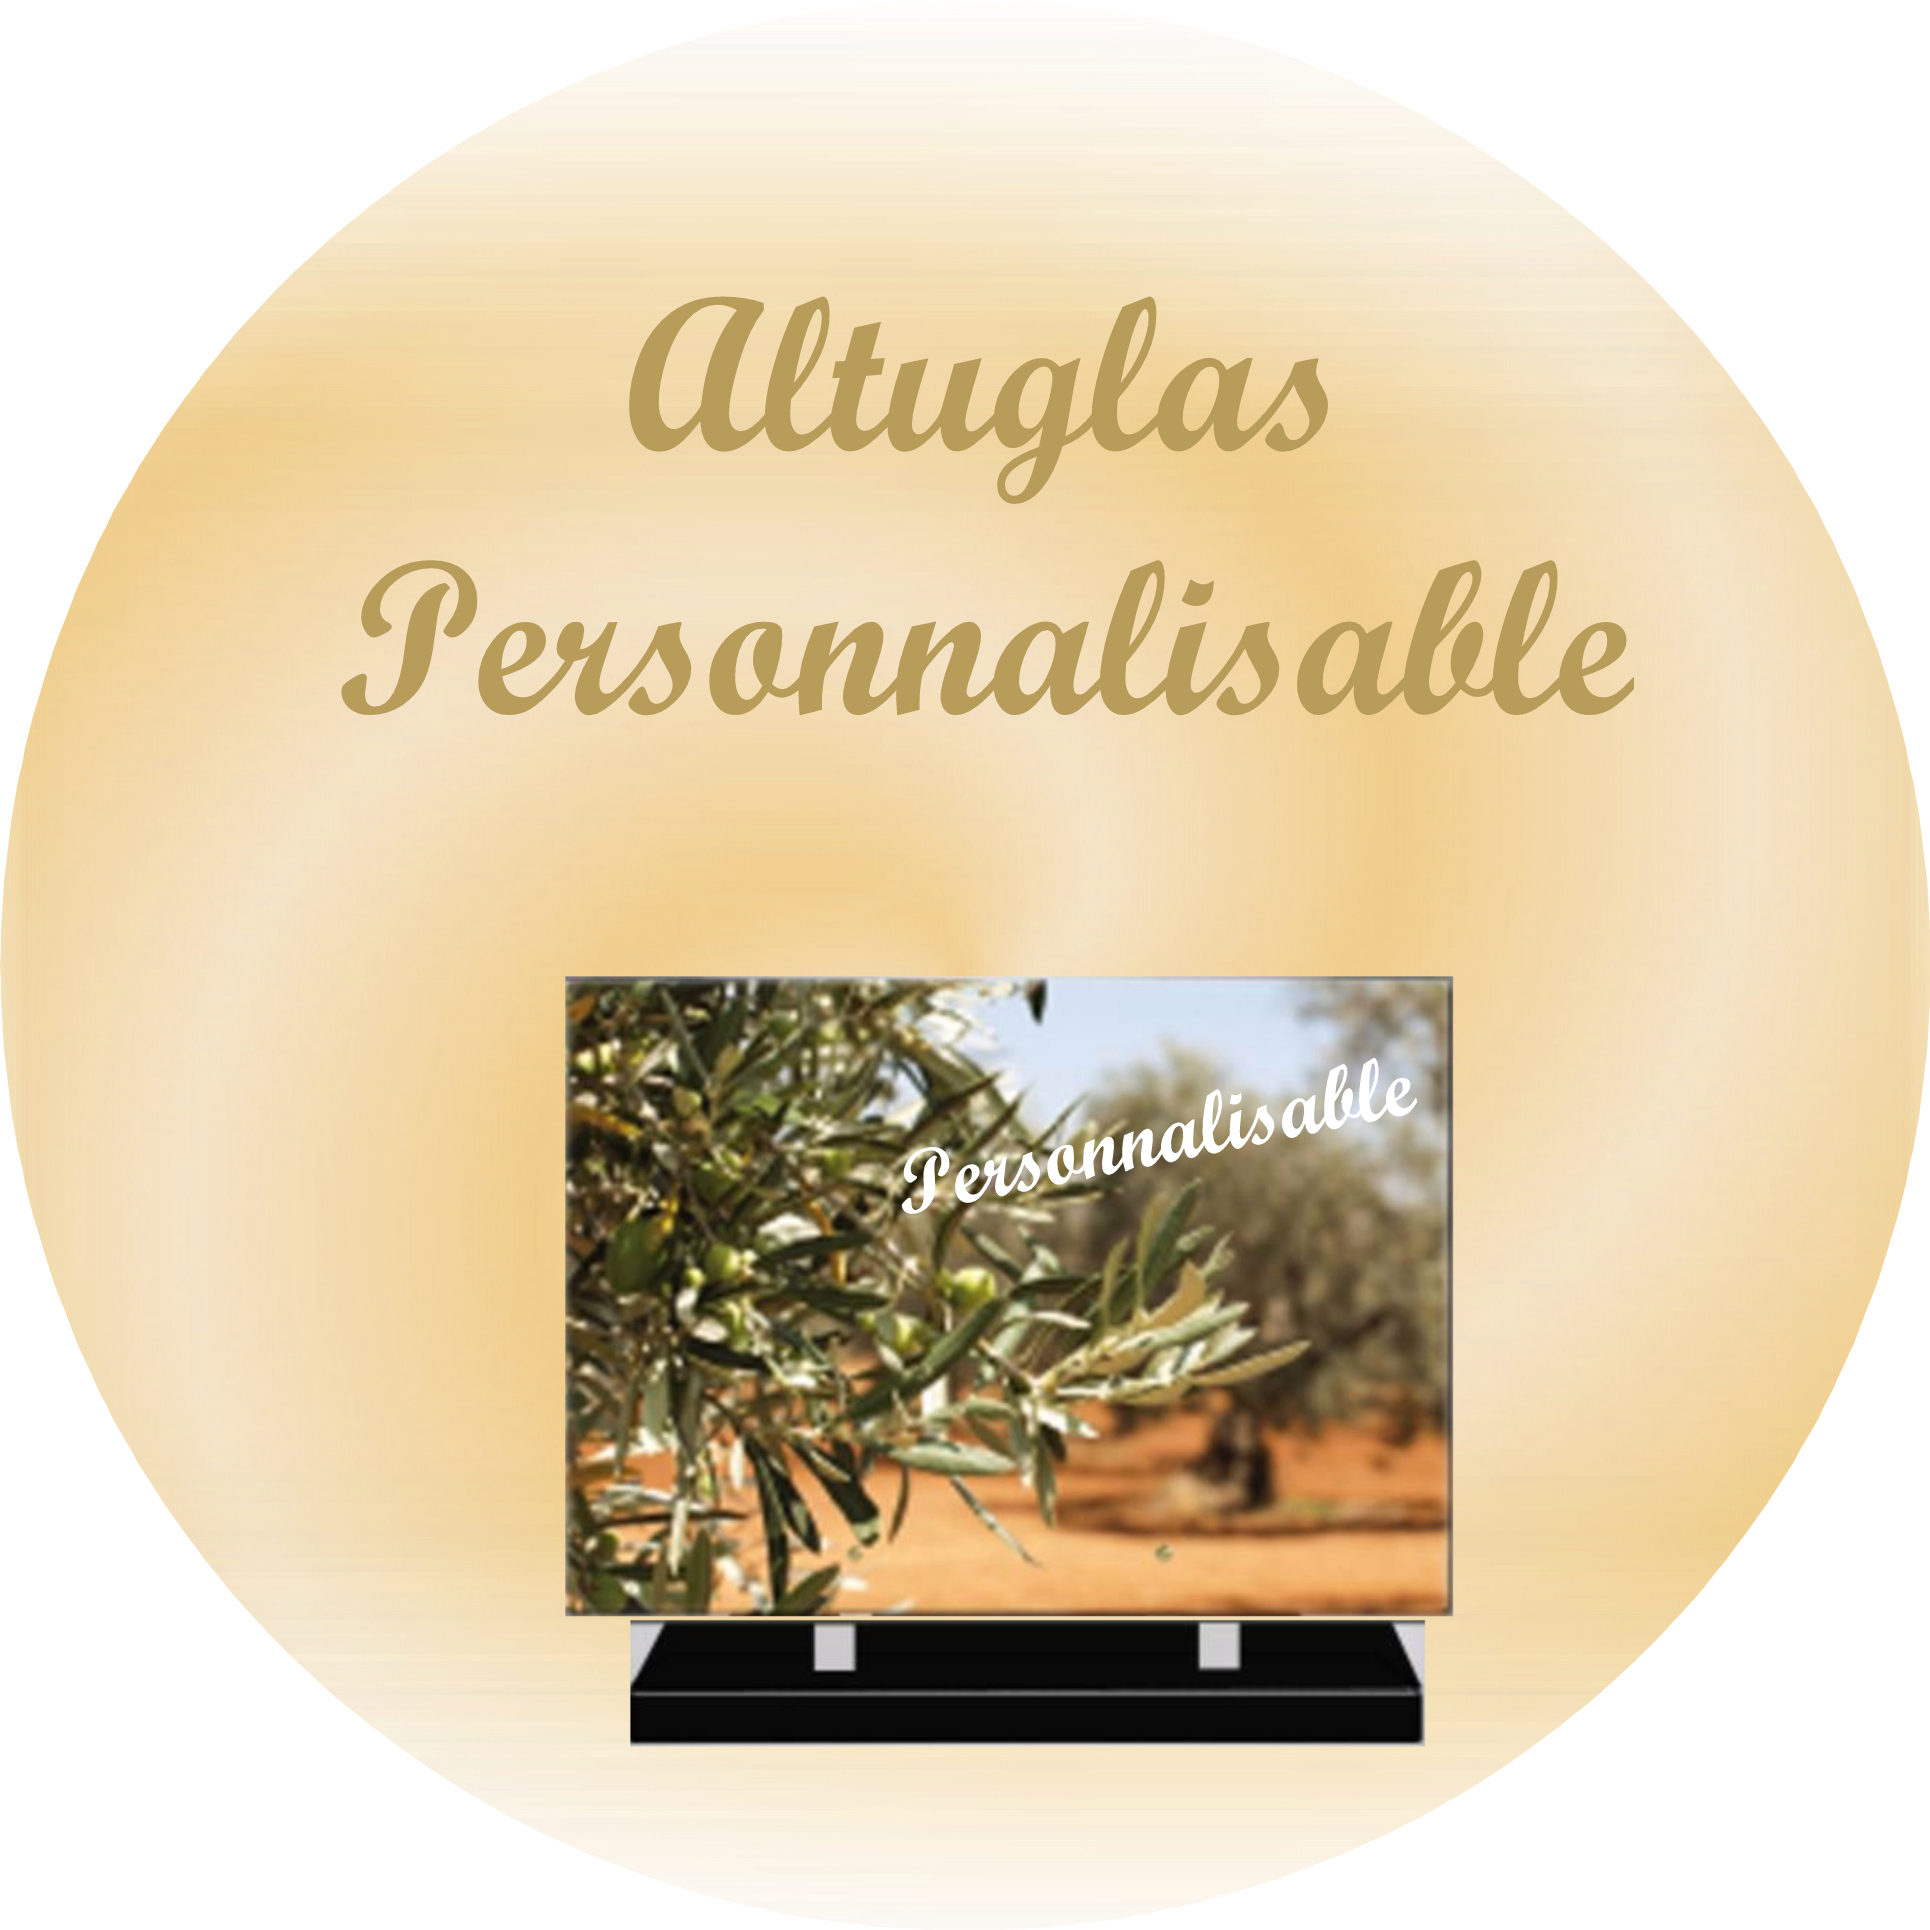 PLAQUES FUNERAIRES MODERNES PERSONNALISABLES RECTANGLE BOISJEAN